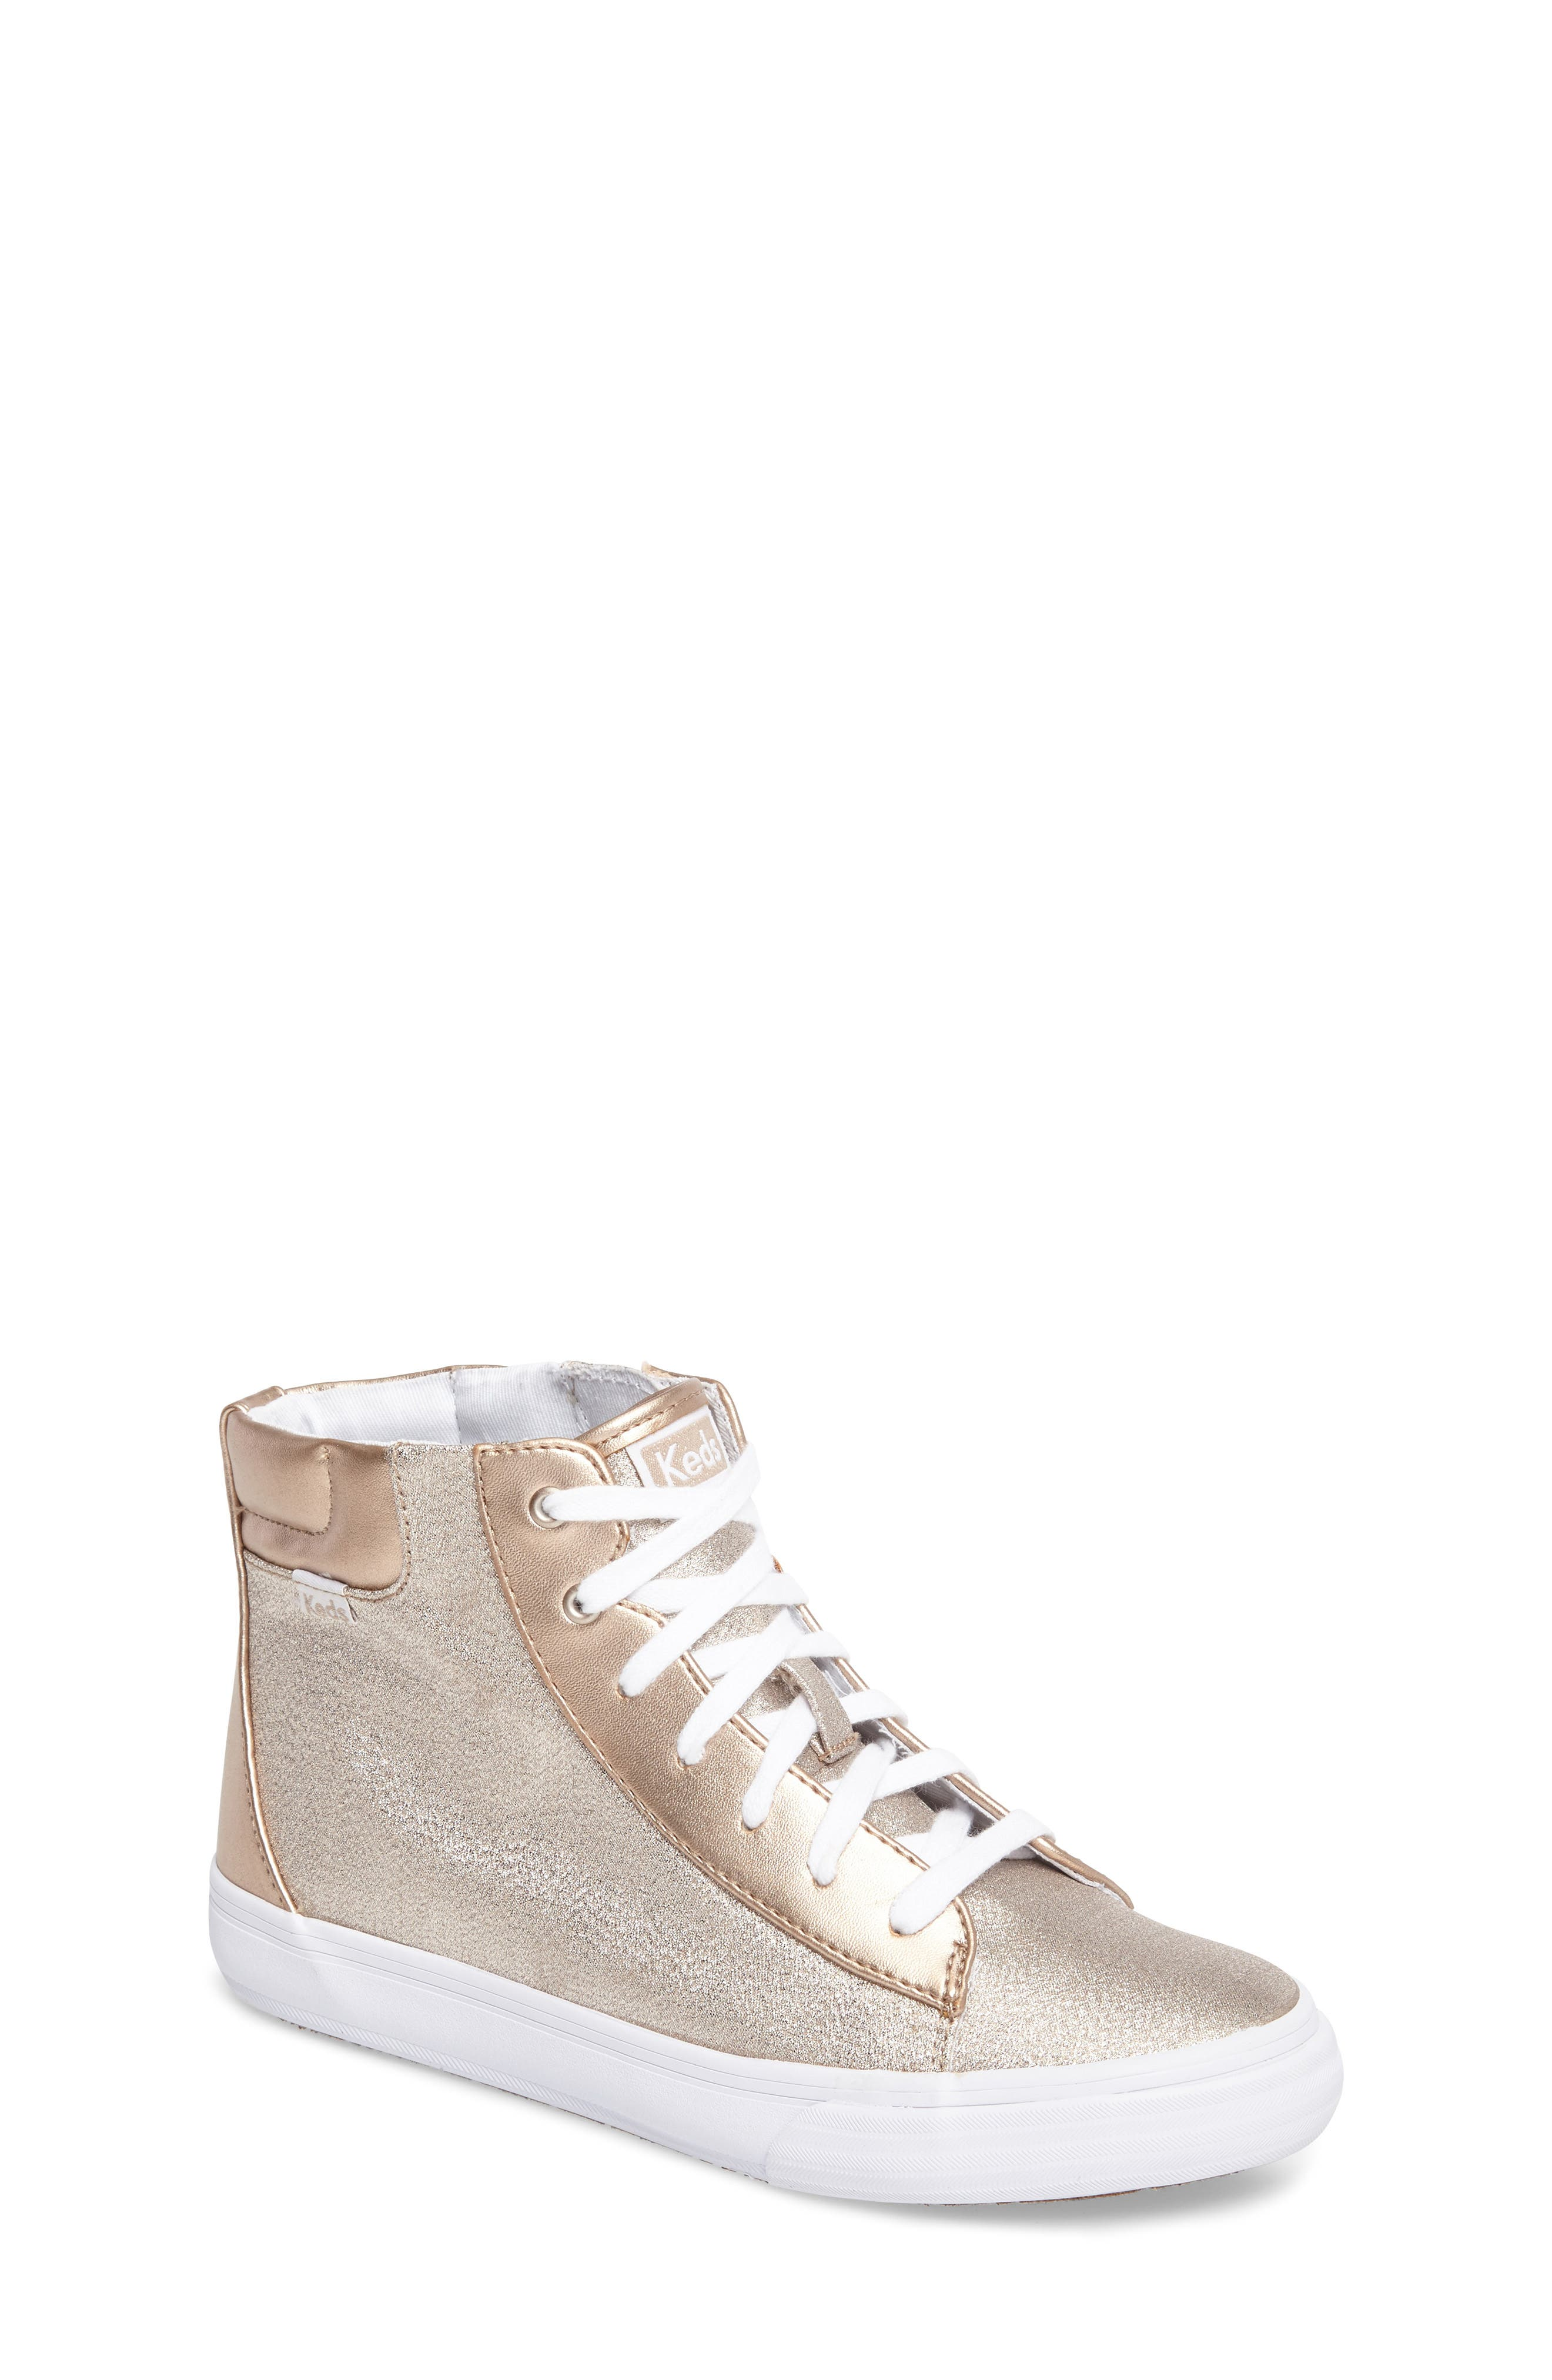 Double Up High Top Sneaker,                             Main thumbnail 1, color,                             Rose Gold